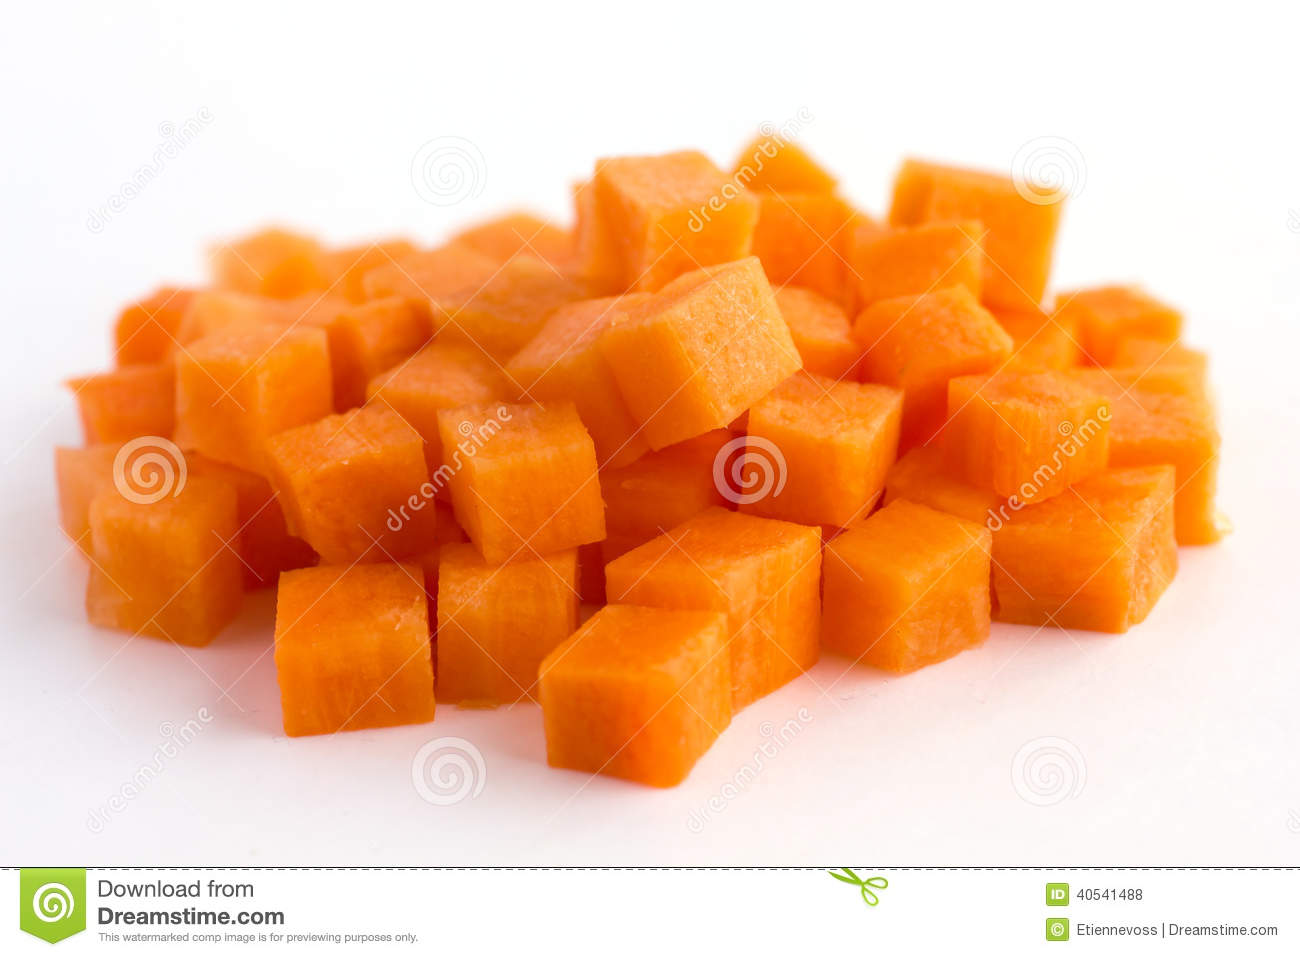 how to cut carrots into cubes